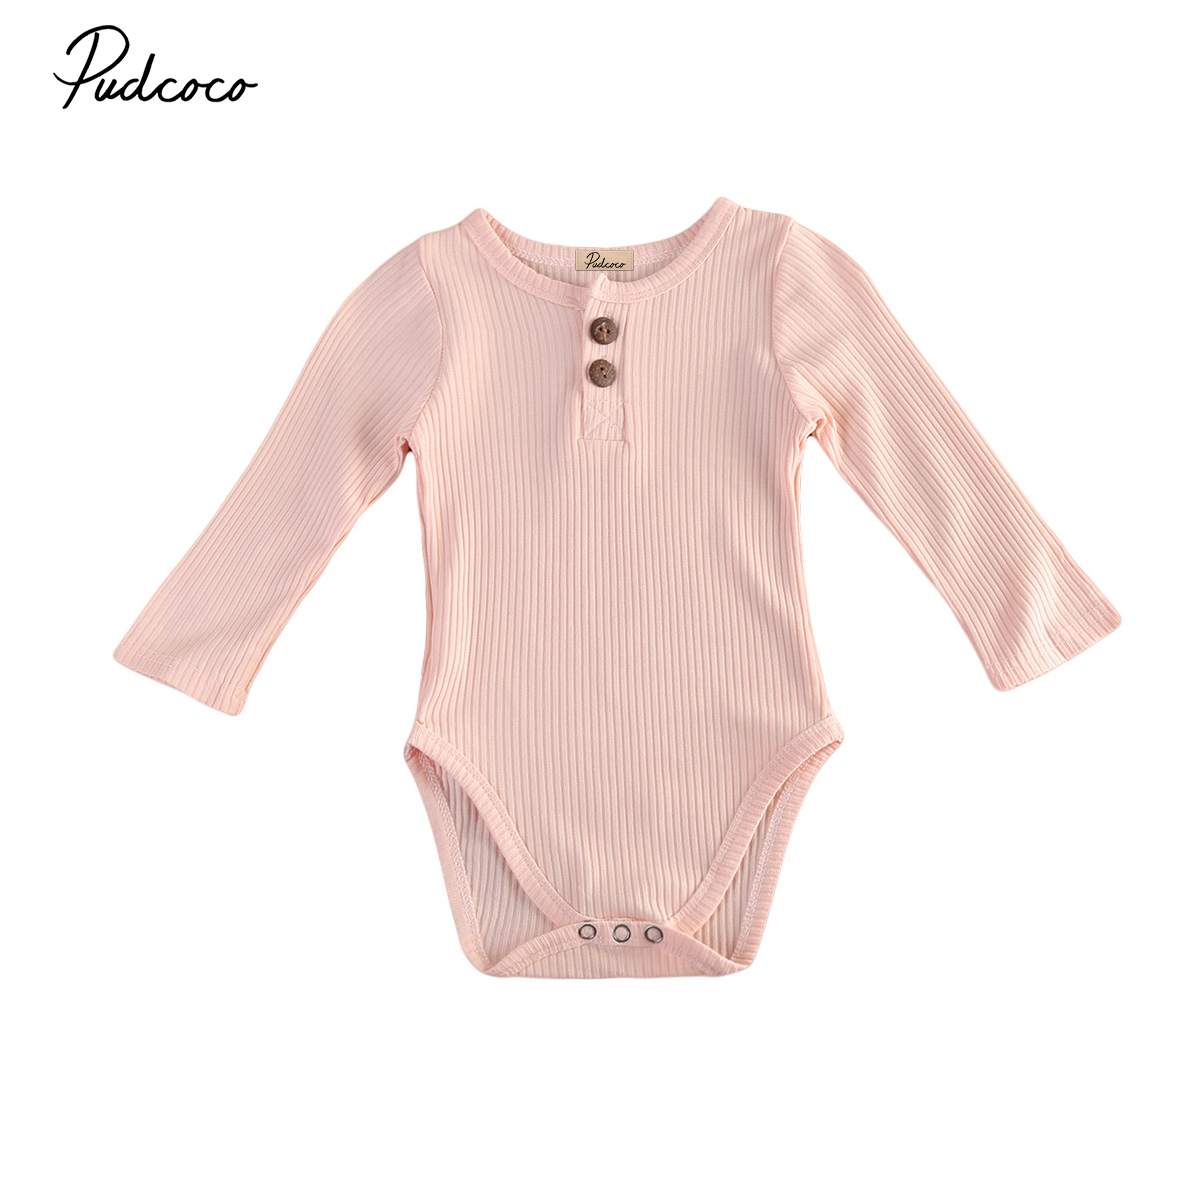 Long Sleeve Newborn Baby Boy Girls Bodysuit Jumpsuit Solid Pink Blue Autumn Sunsuit One-Pieces Outfits Clothes